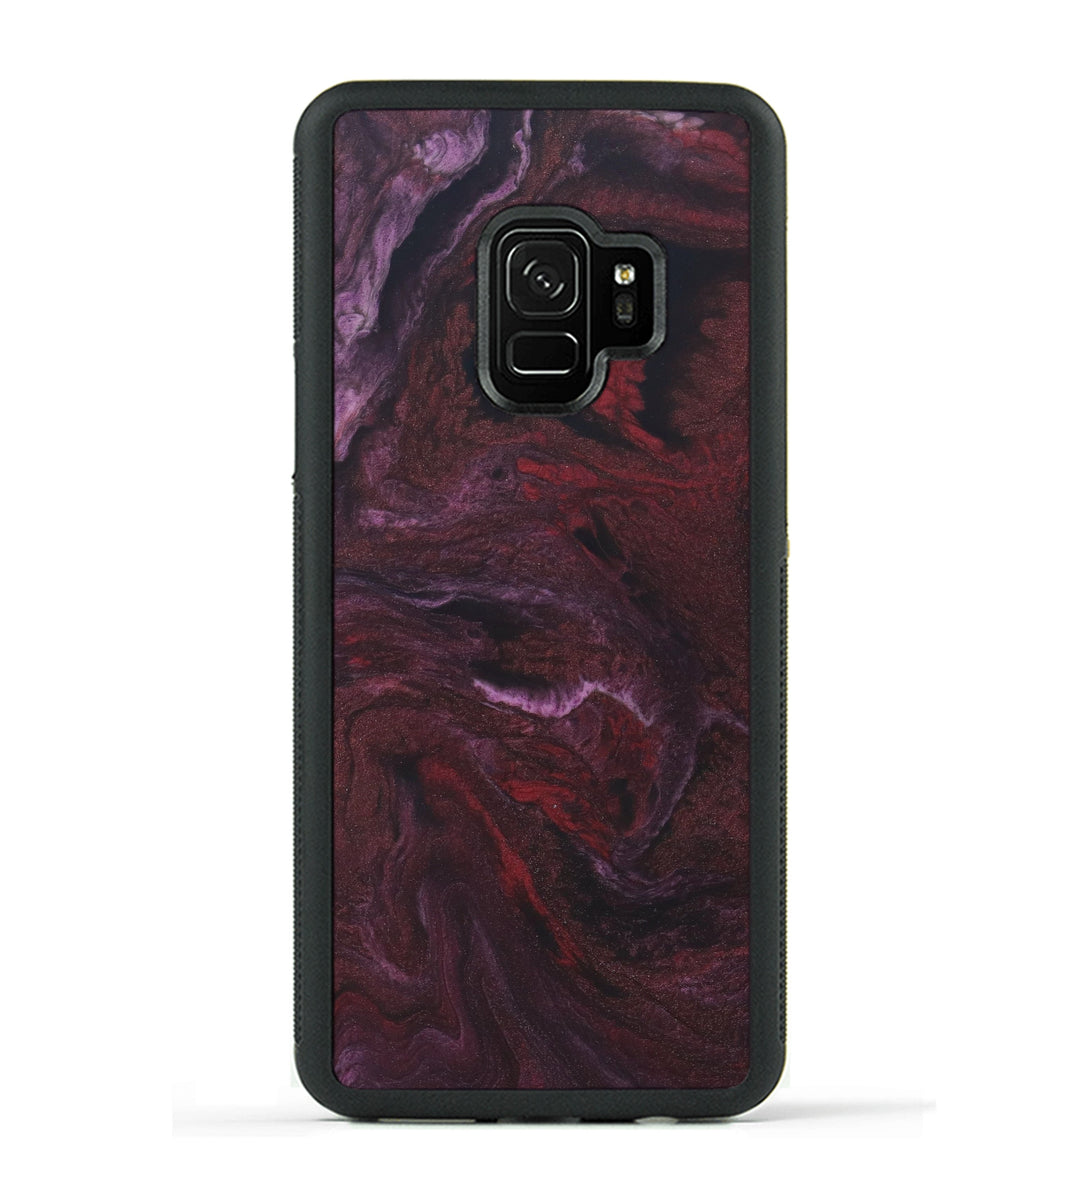 Galaxy S9 ResinArt Phone Case - Farzad (Dark Red, 347673)